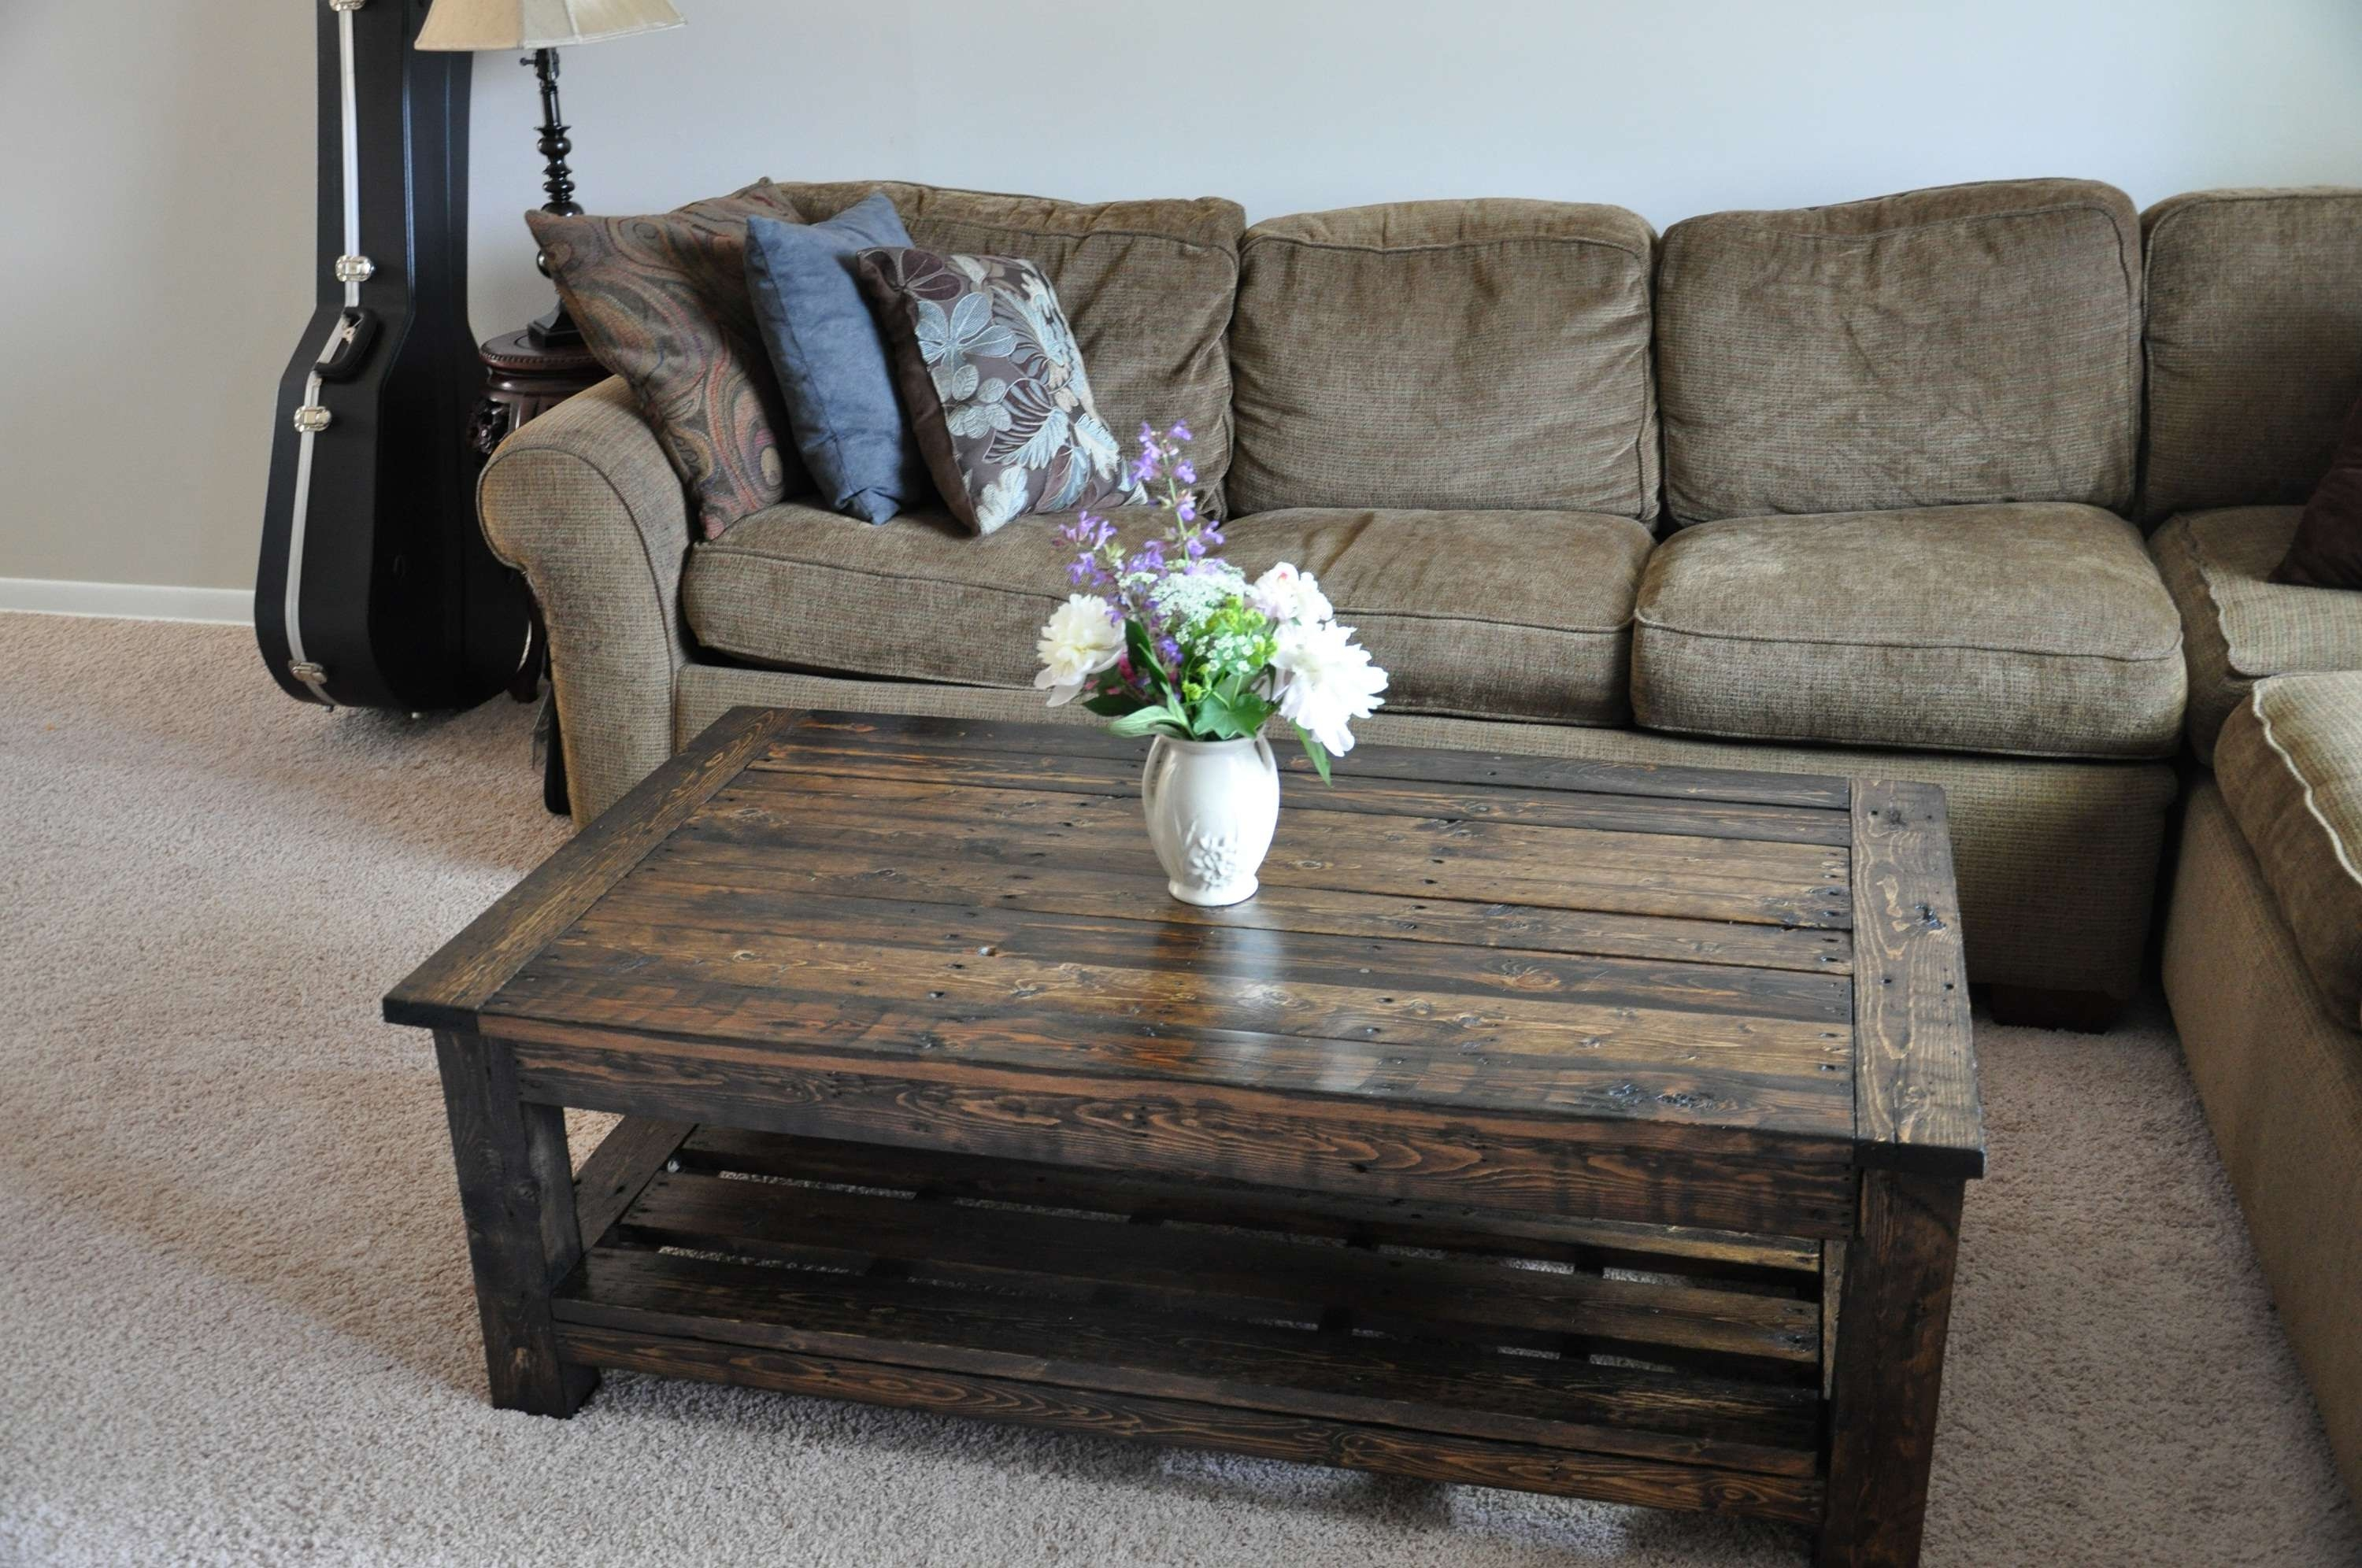 Most Recently Released Huge Coffee Tables Inside Decorations : 18 Diy Pallet Coffee Tables Guide Patterns For (View 13 of 20)